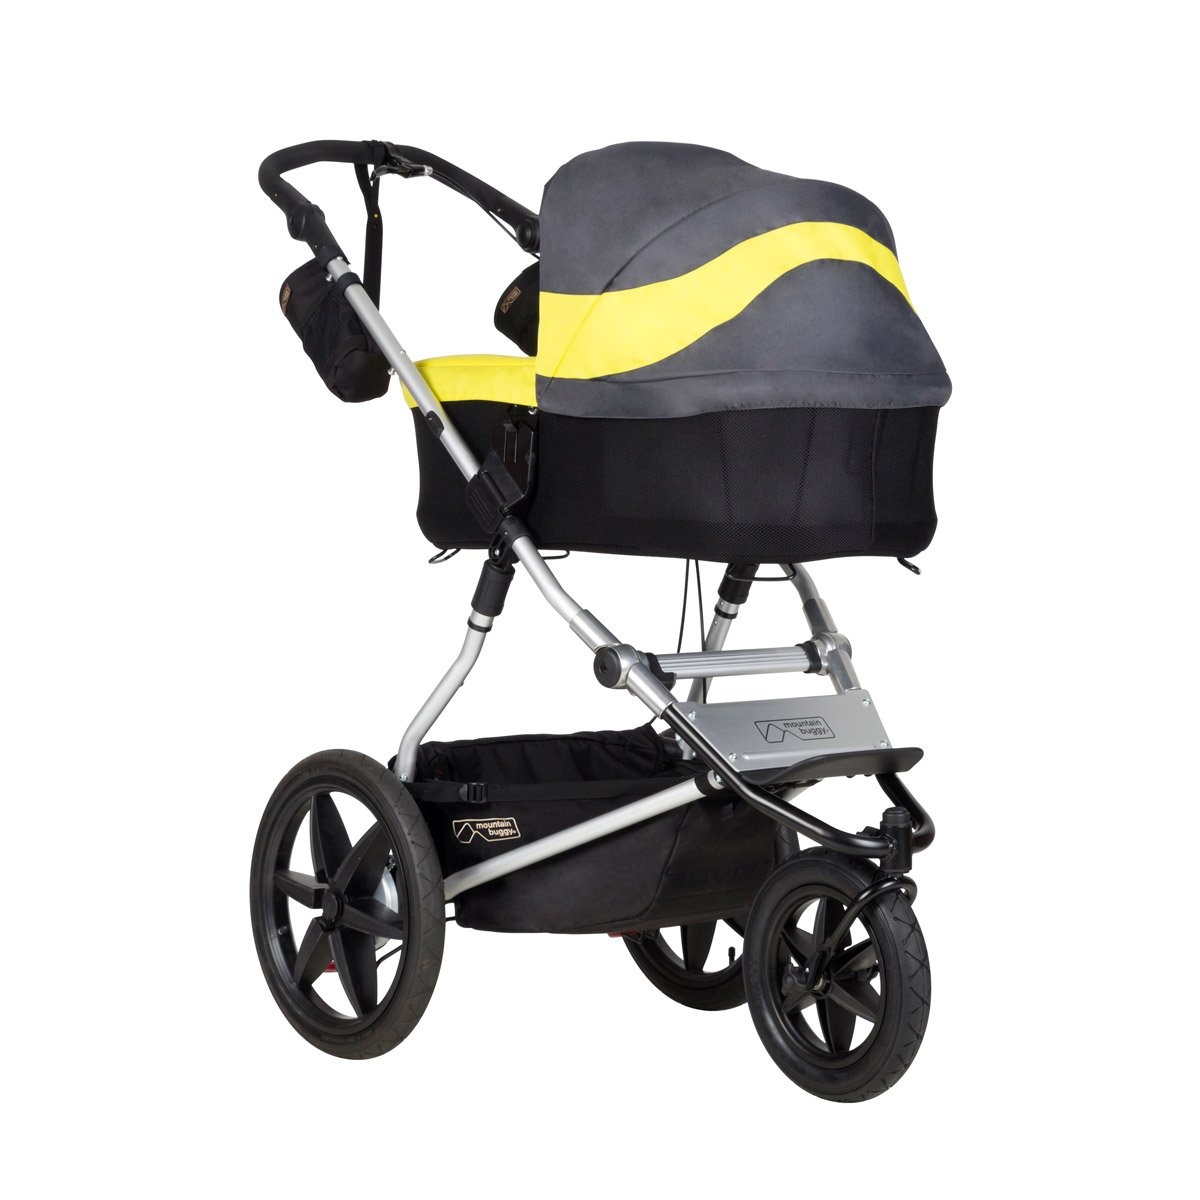 Graphite Plus One Mountain Buggy Carrycot Plus with 3 Seat Modes for 2015 Terrain and Urban Jungle